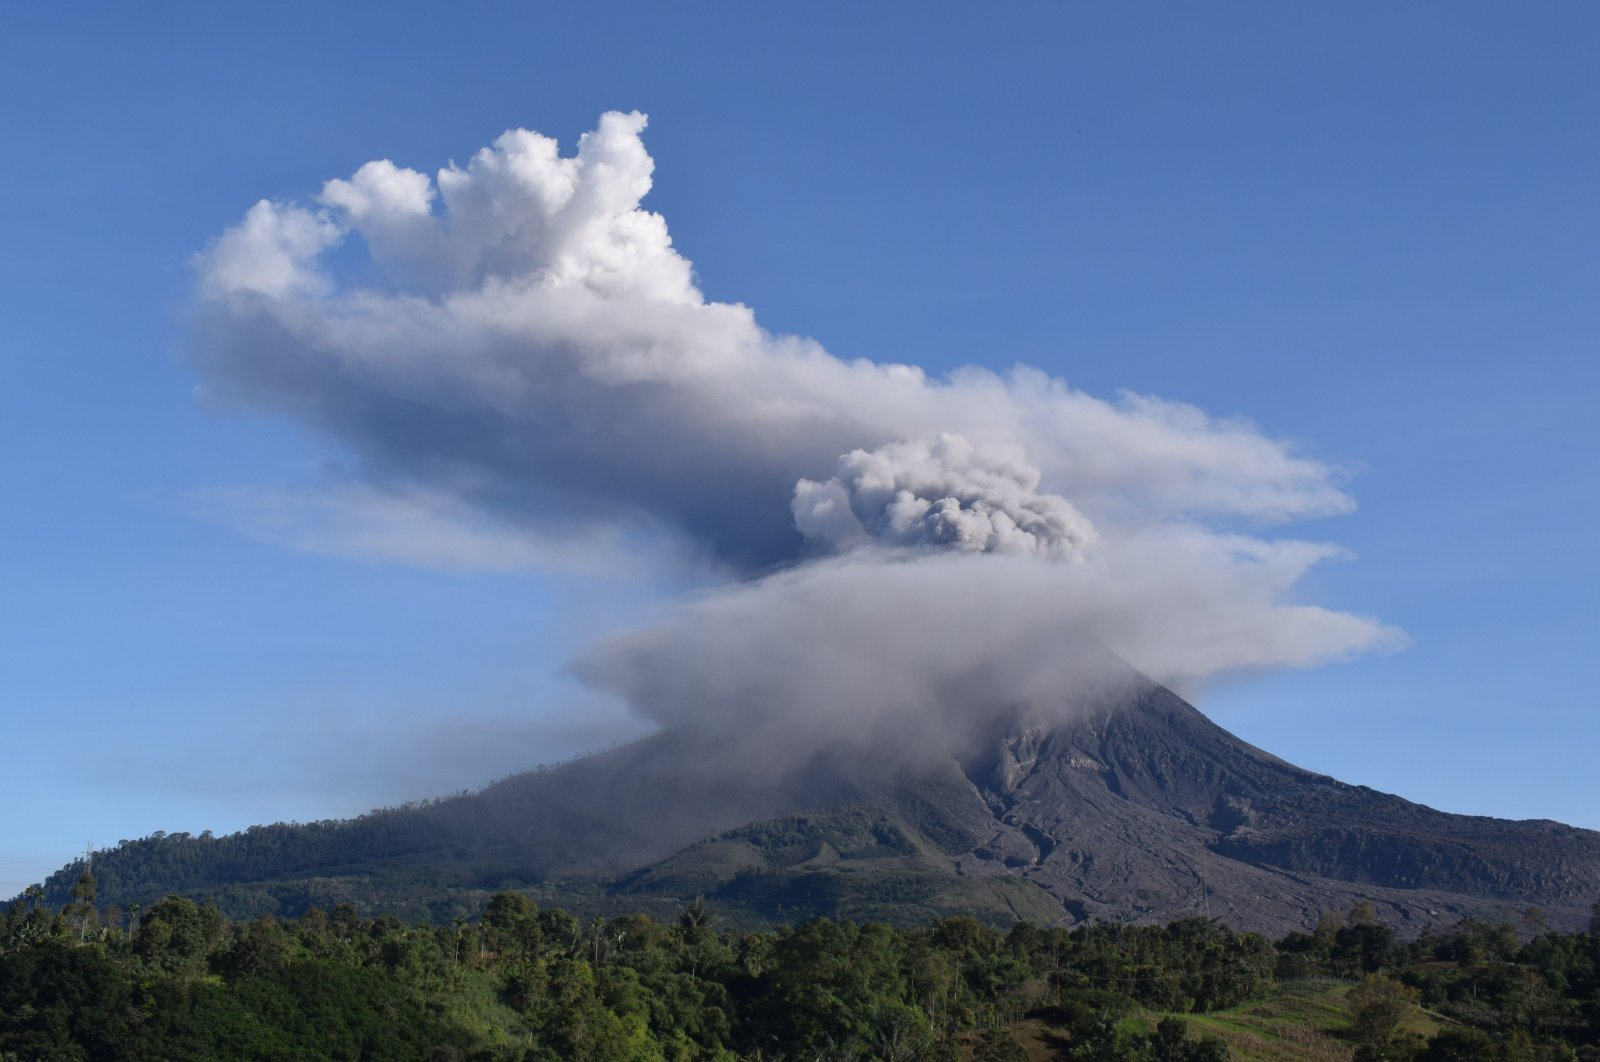 Mount Sinabung spews thick smoke into the air in Karo, North Sumatra, Indonesia, Aug. 23, 2020. (AFP Photo)